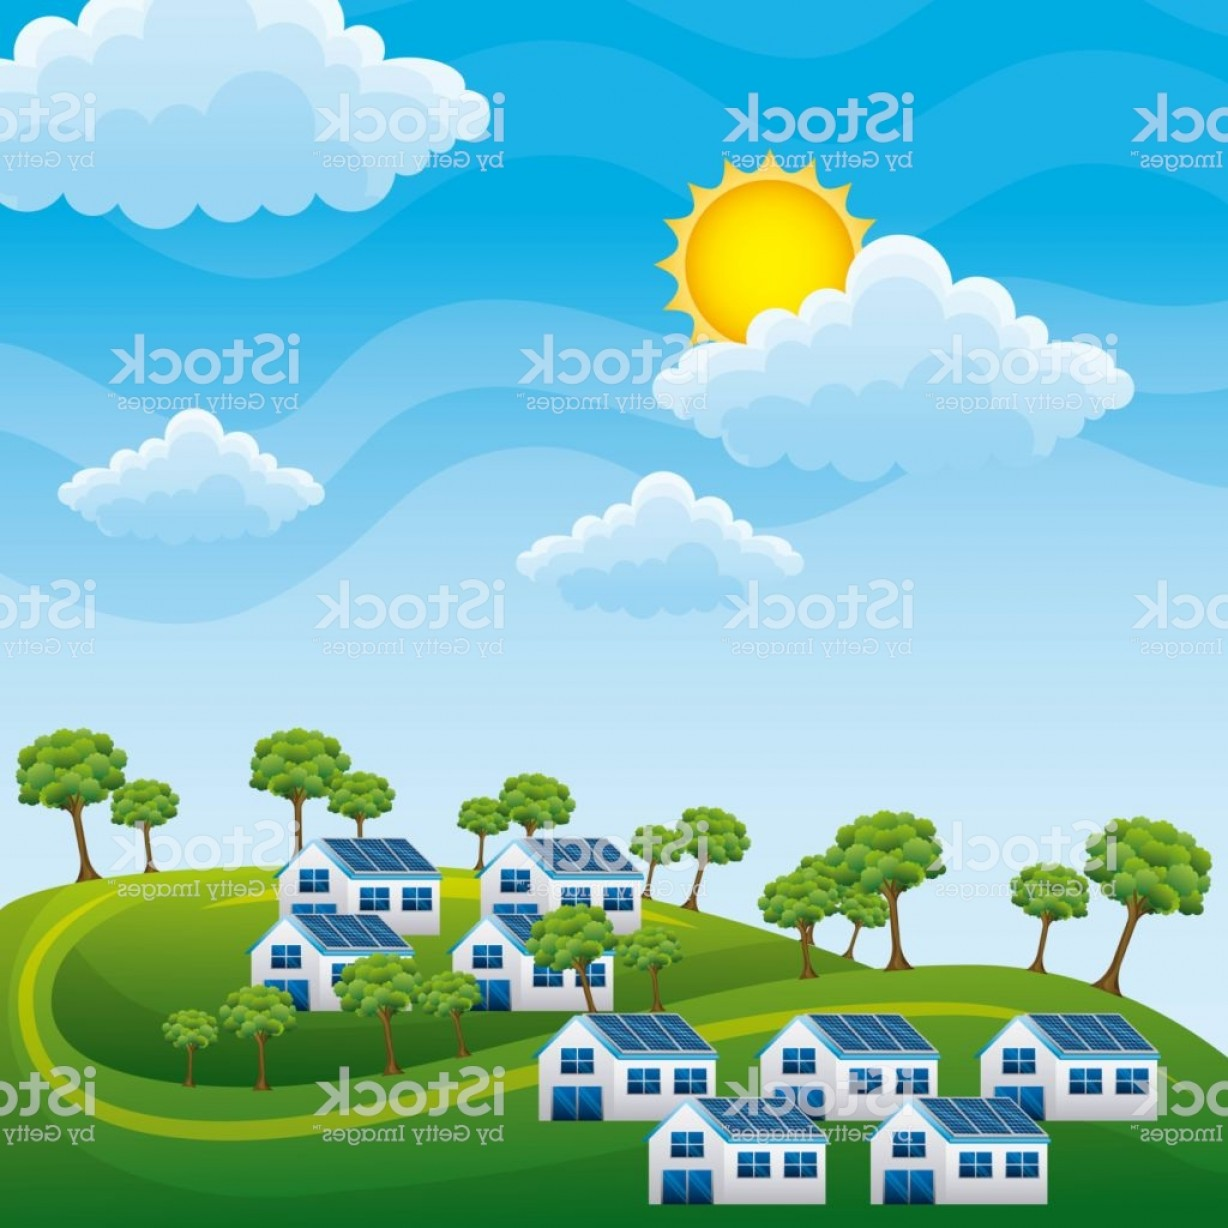 California Lifestyle Vector: Natural Landscape Hills Houses Panel Solar Trees Energy Clean Gm